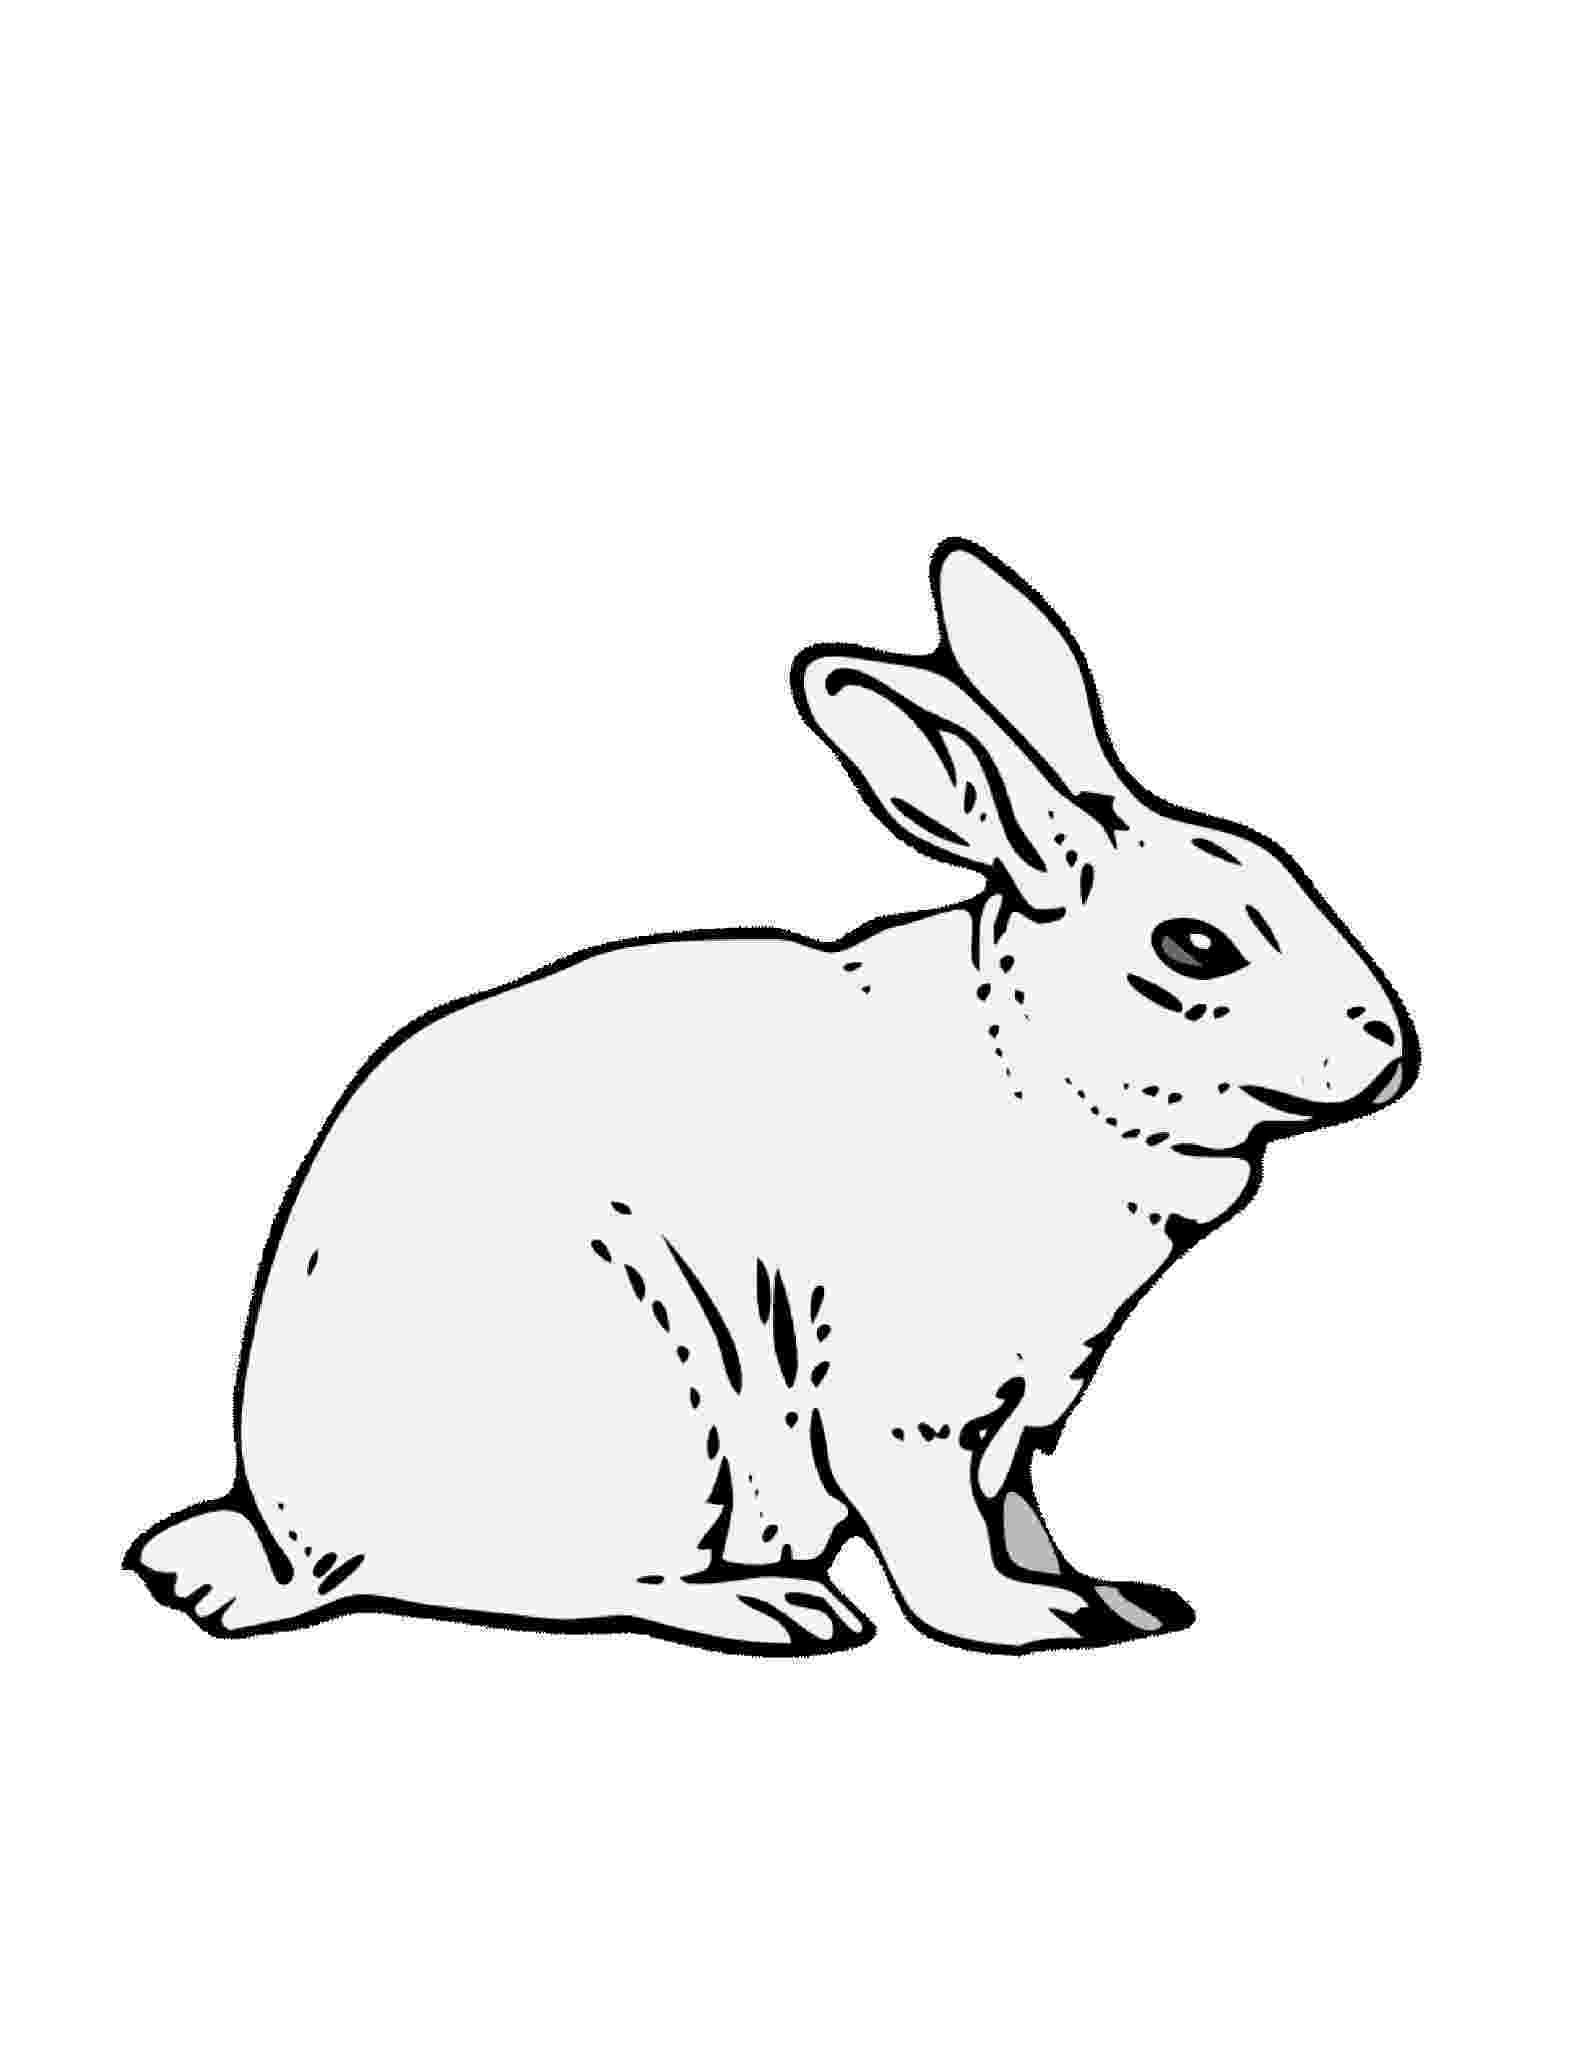 bunny rabbit pictures to color small rabbit coloring page free printable coloring pages bunny to rabbit pictures color